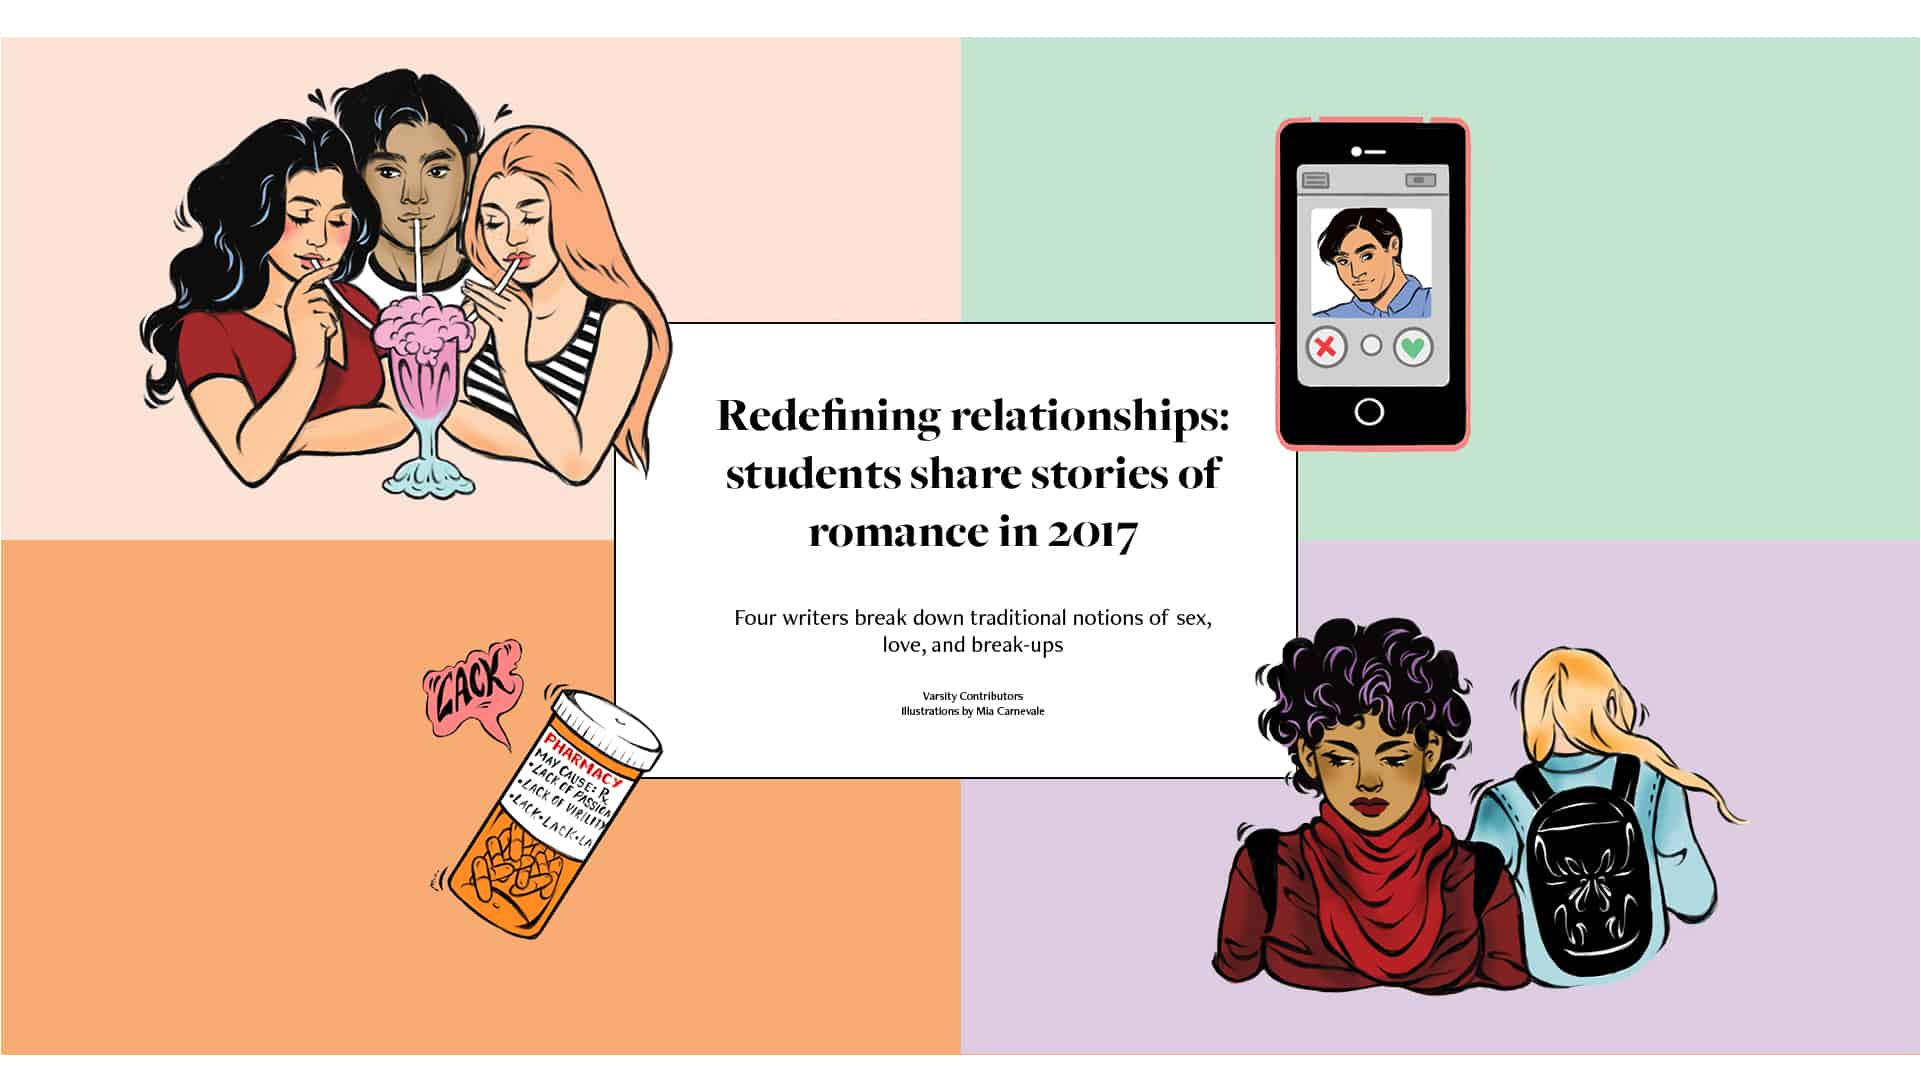 Redefining relationships: students share stories of romance in 2017